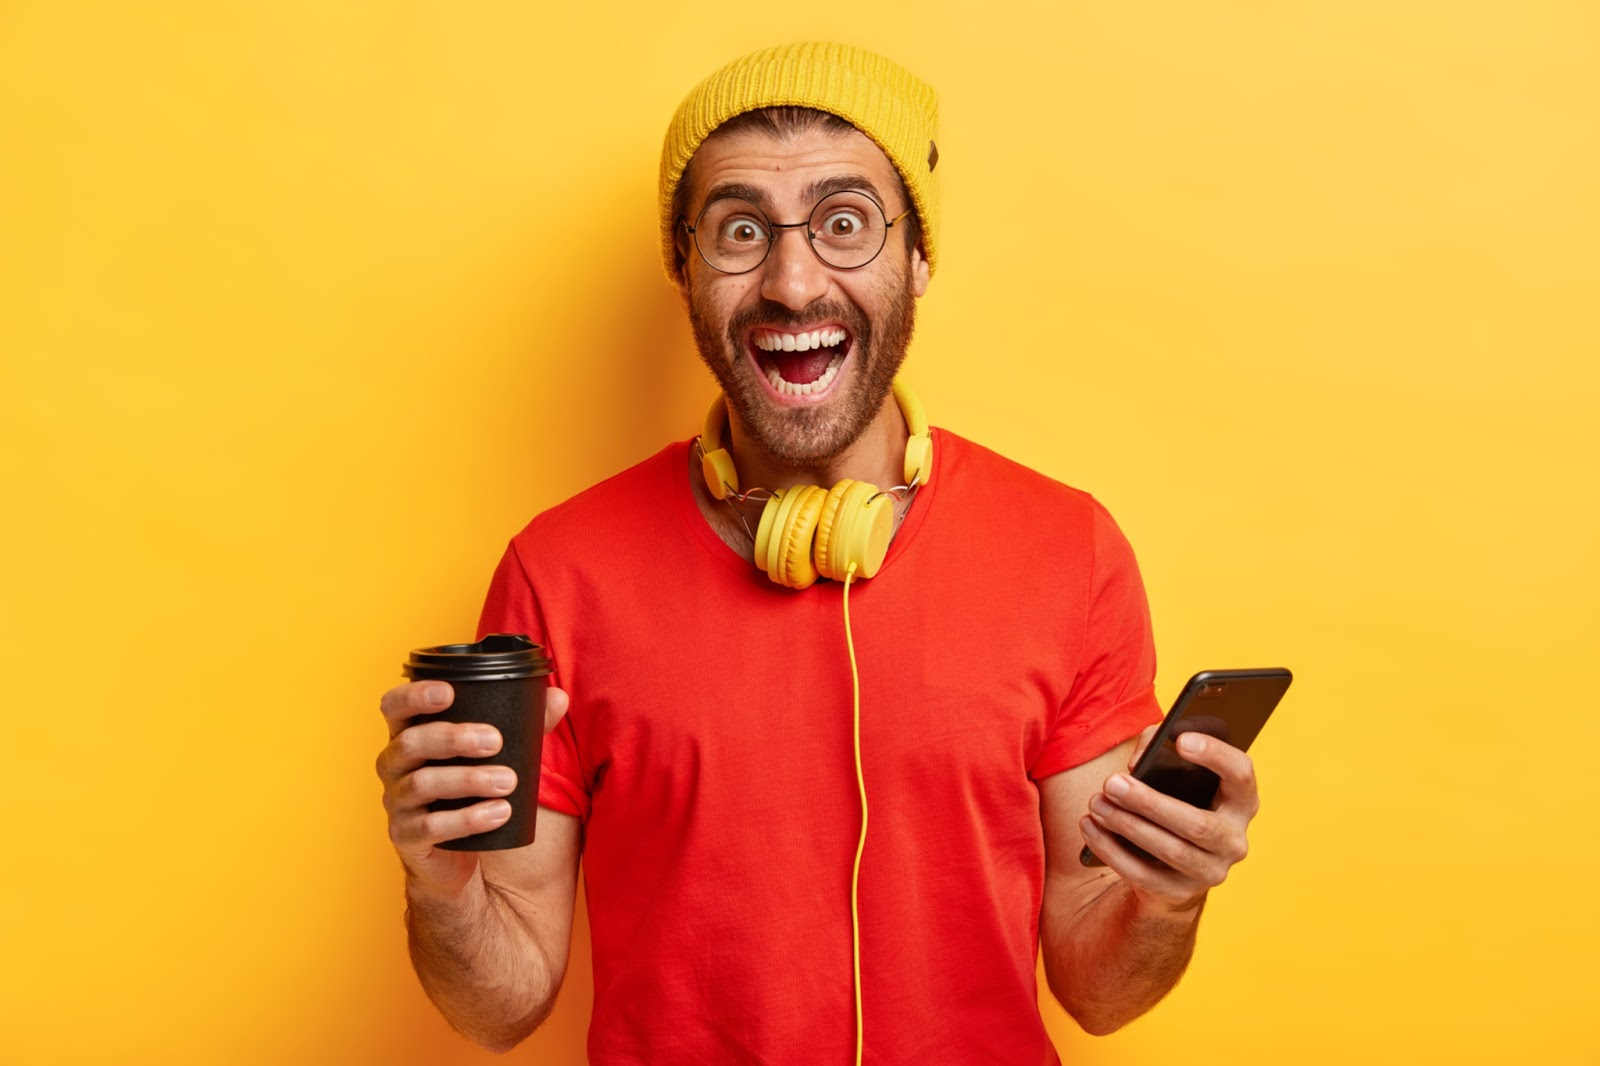 A man looks excited to attend virtual conferences with his phone, headphones, and a cup of coffee